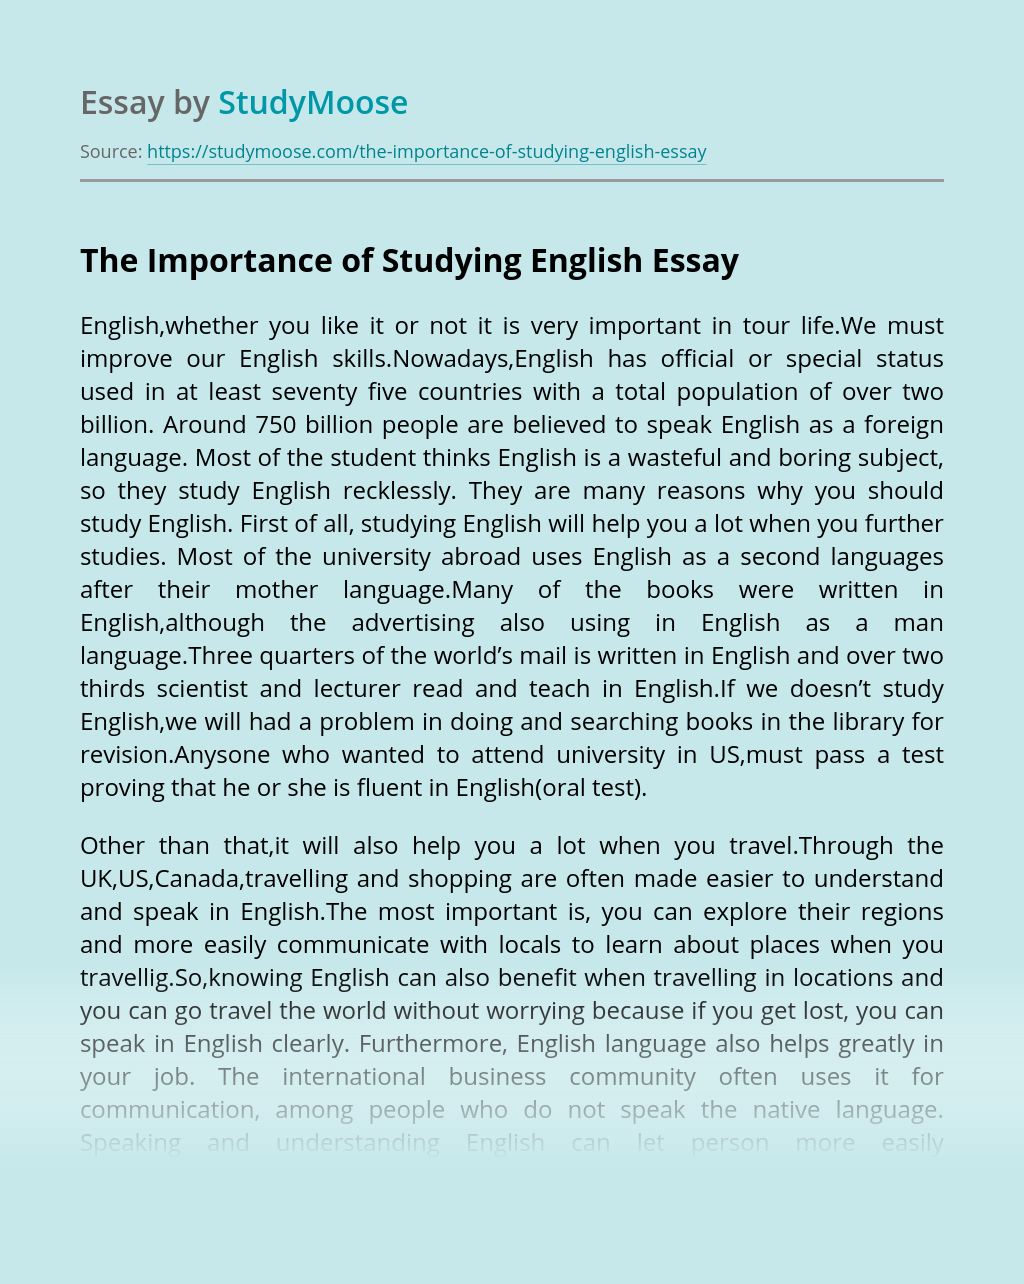 The Importance of Studying English